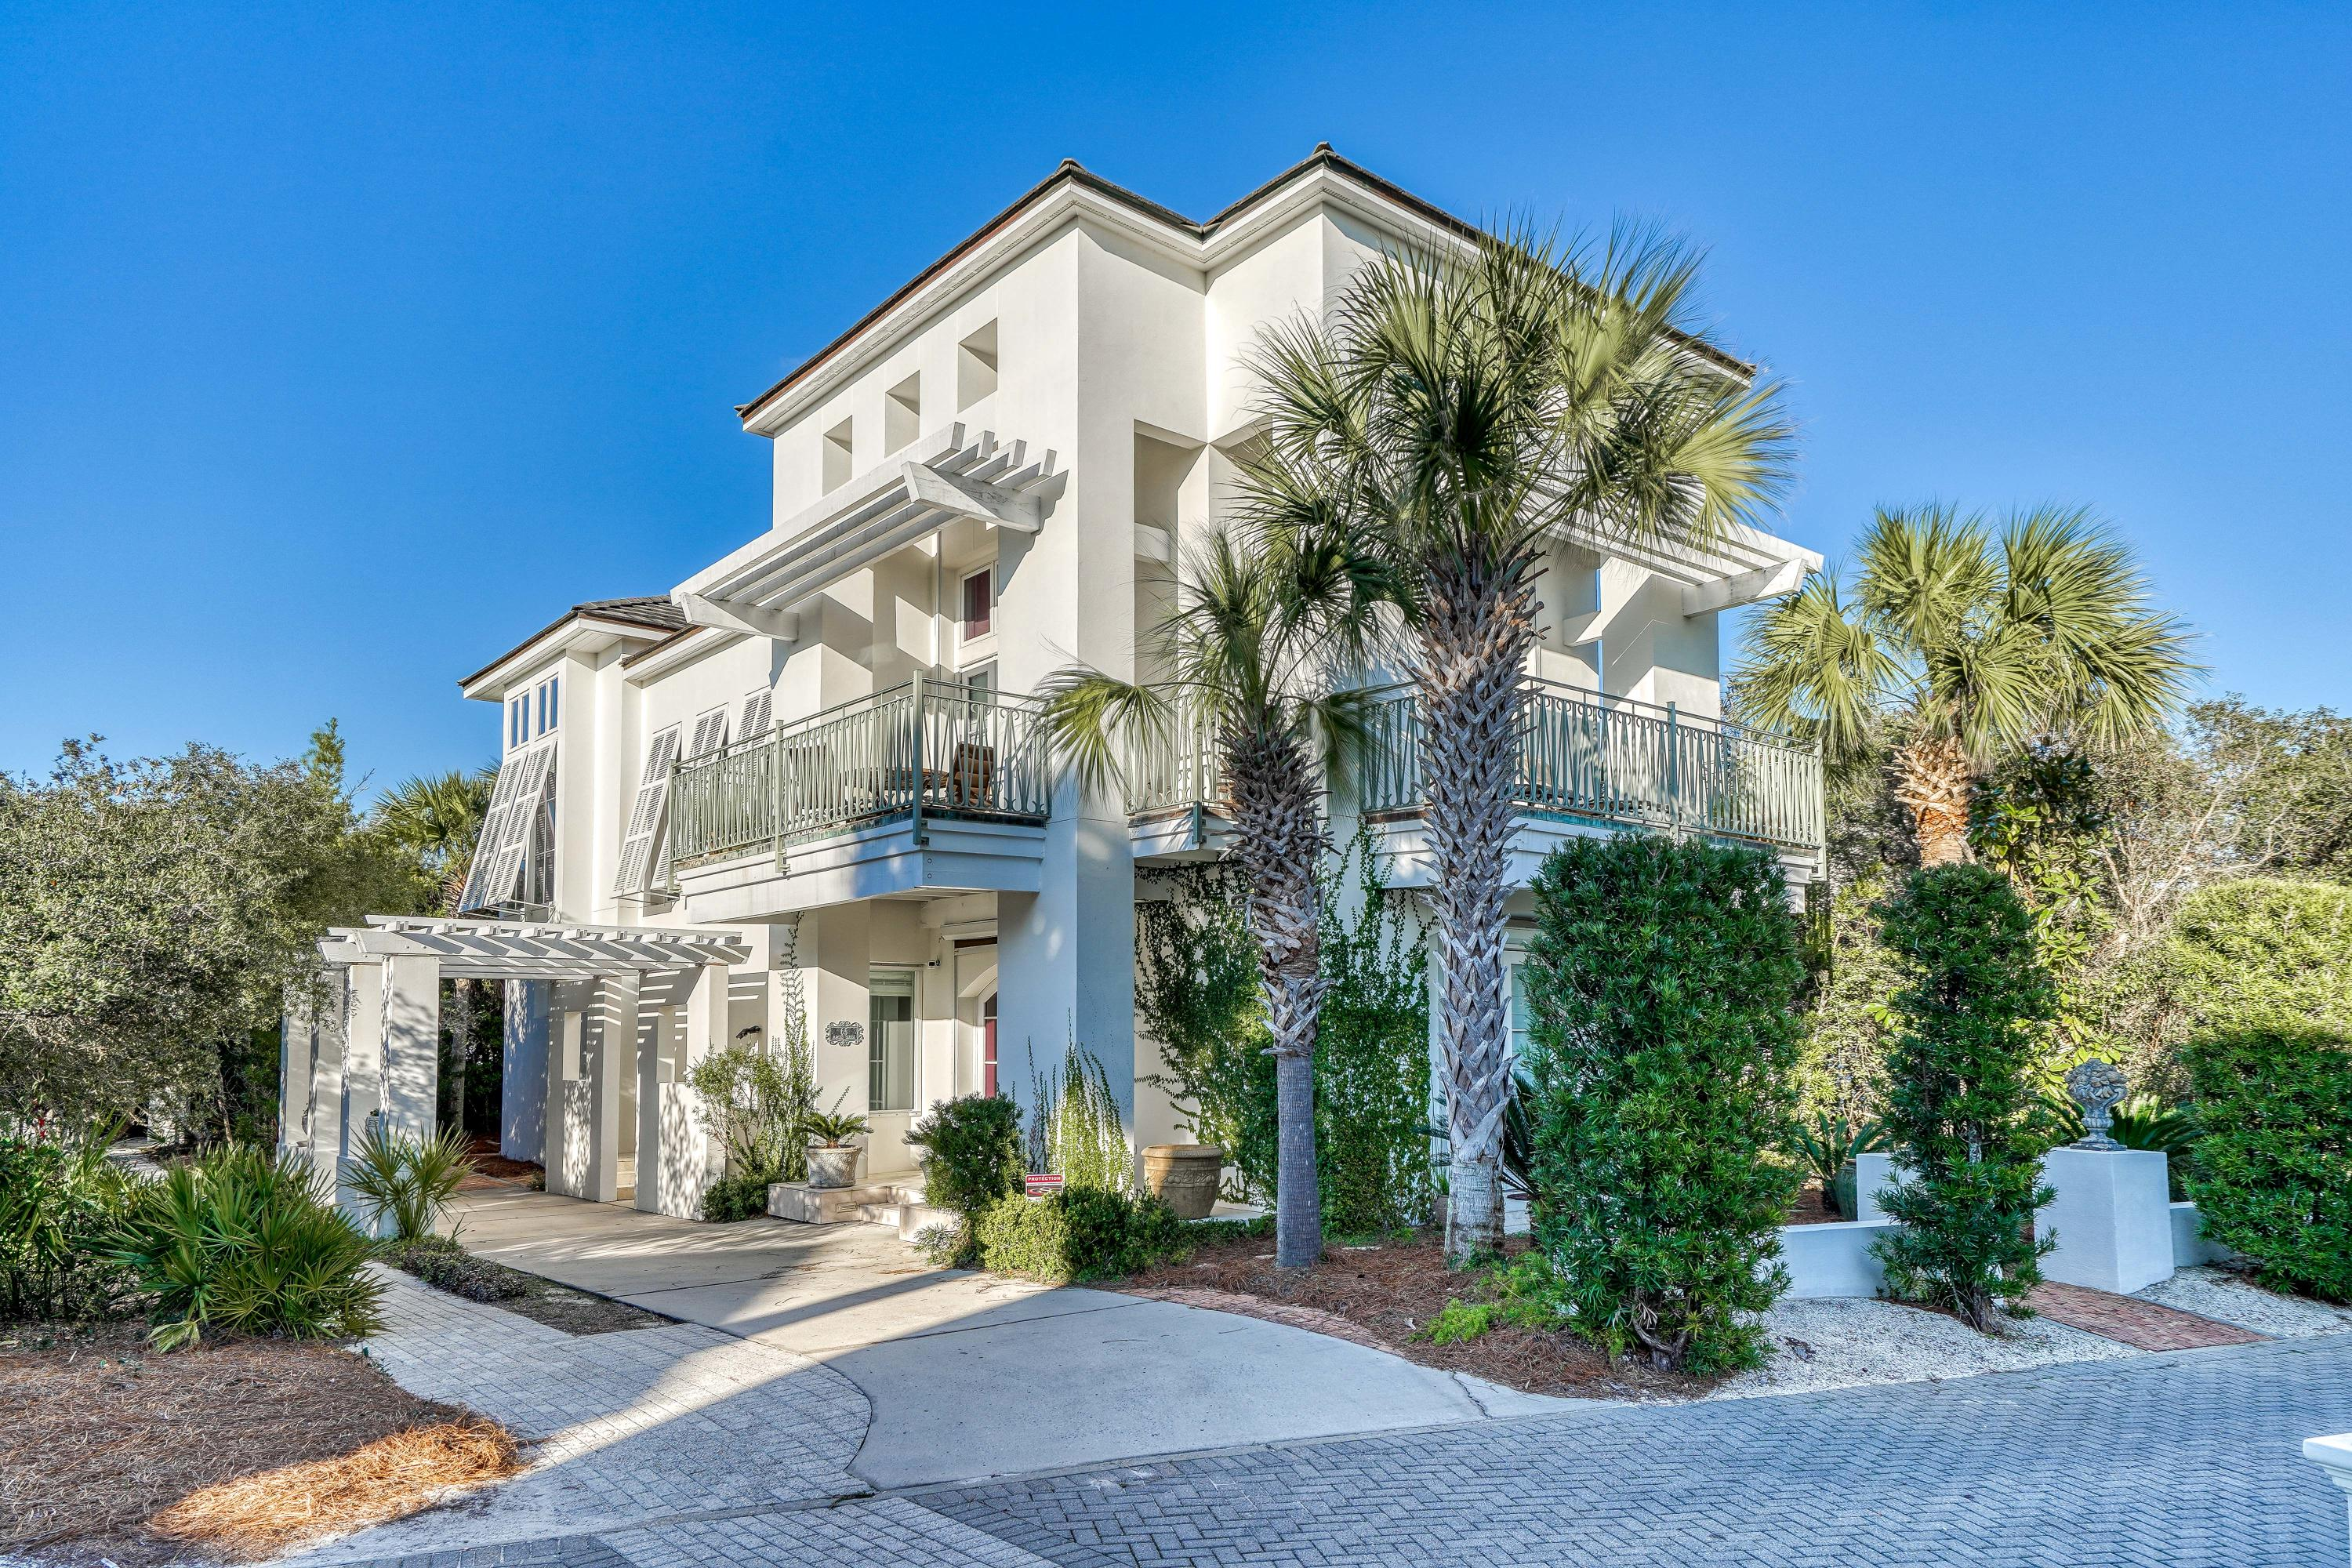 A 'PRIVATE OASIS' in the HEART of SEAGROVE!! LUXURY at it's finest, the GATED & WALLED community is